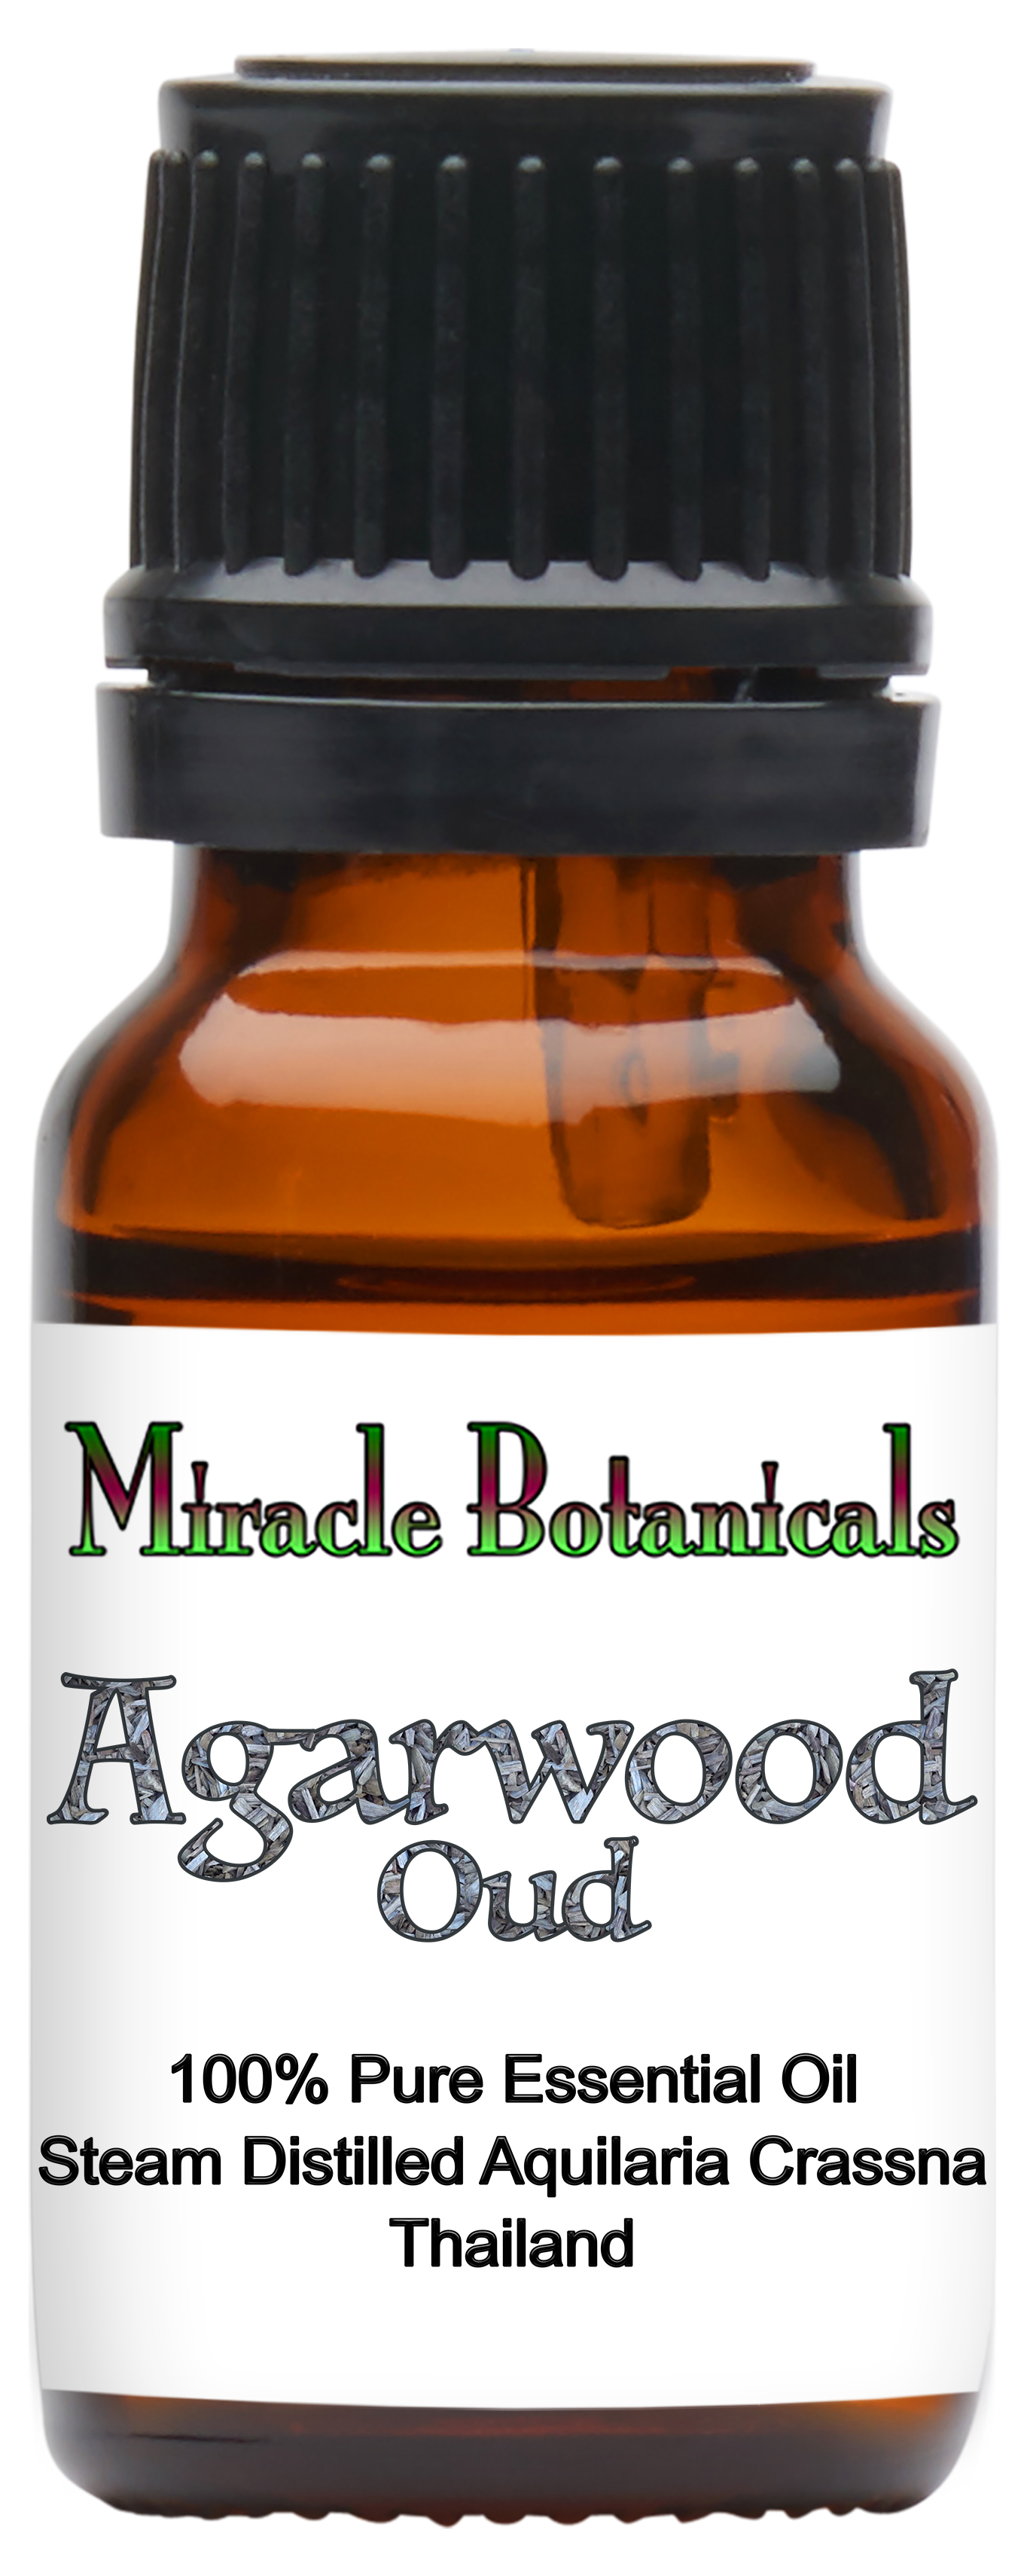 Agarwood Essential Oil aka OUD